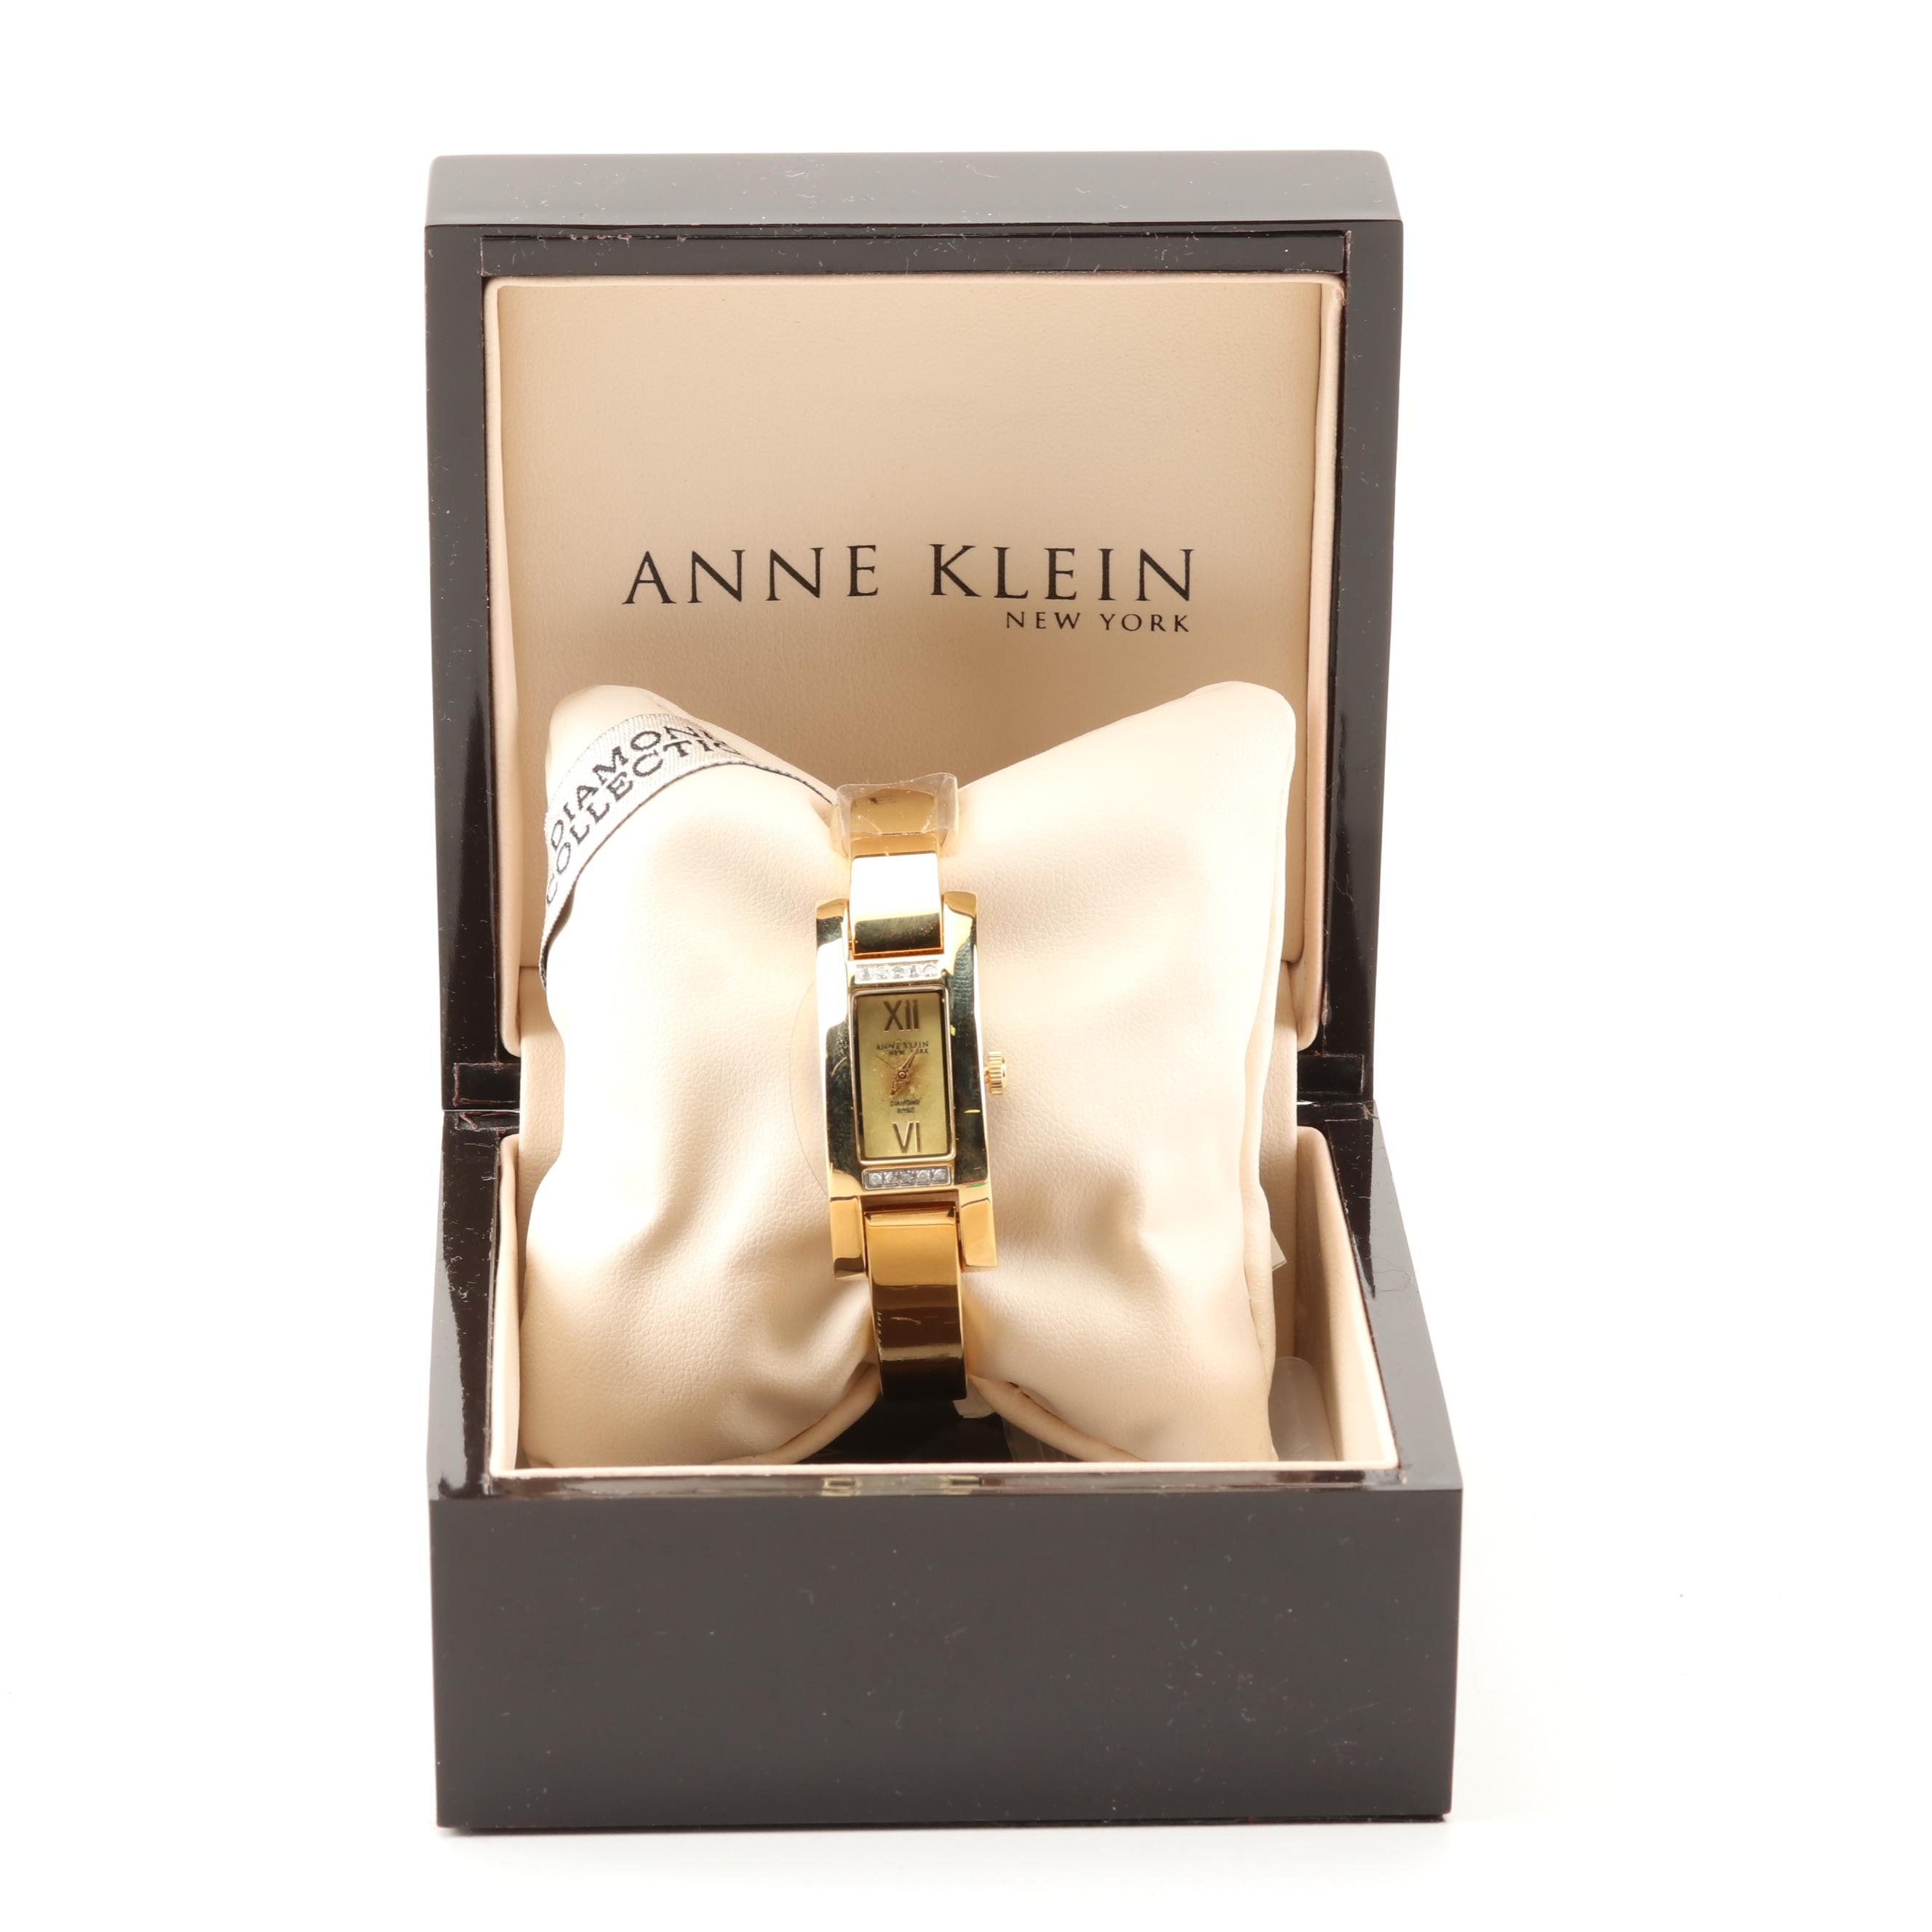 Anne Klein New York Stainless Steel and Diamond Wristwatch